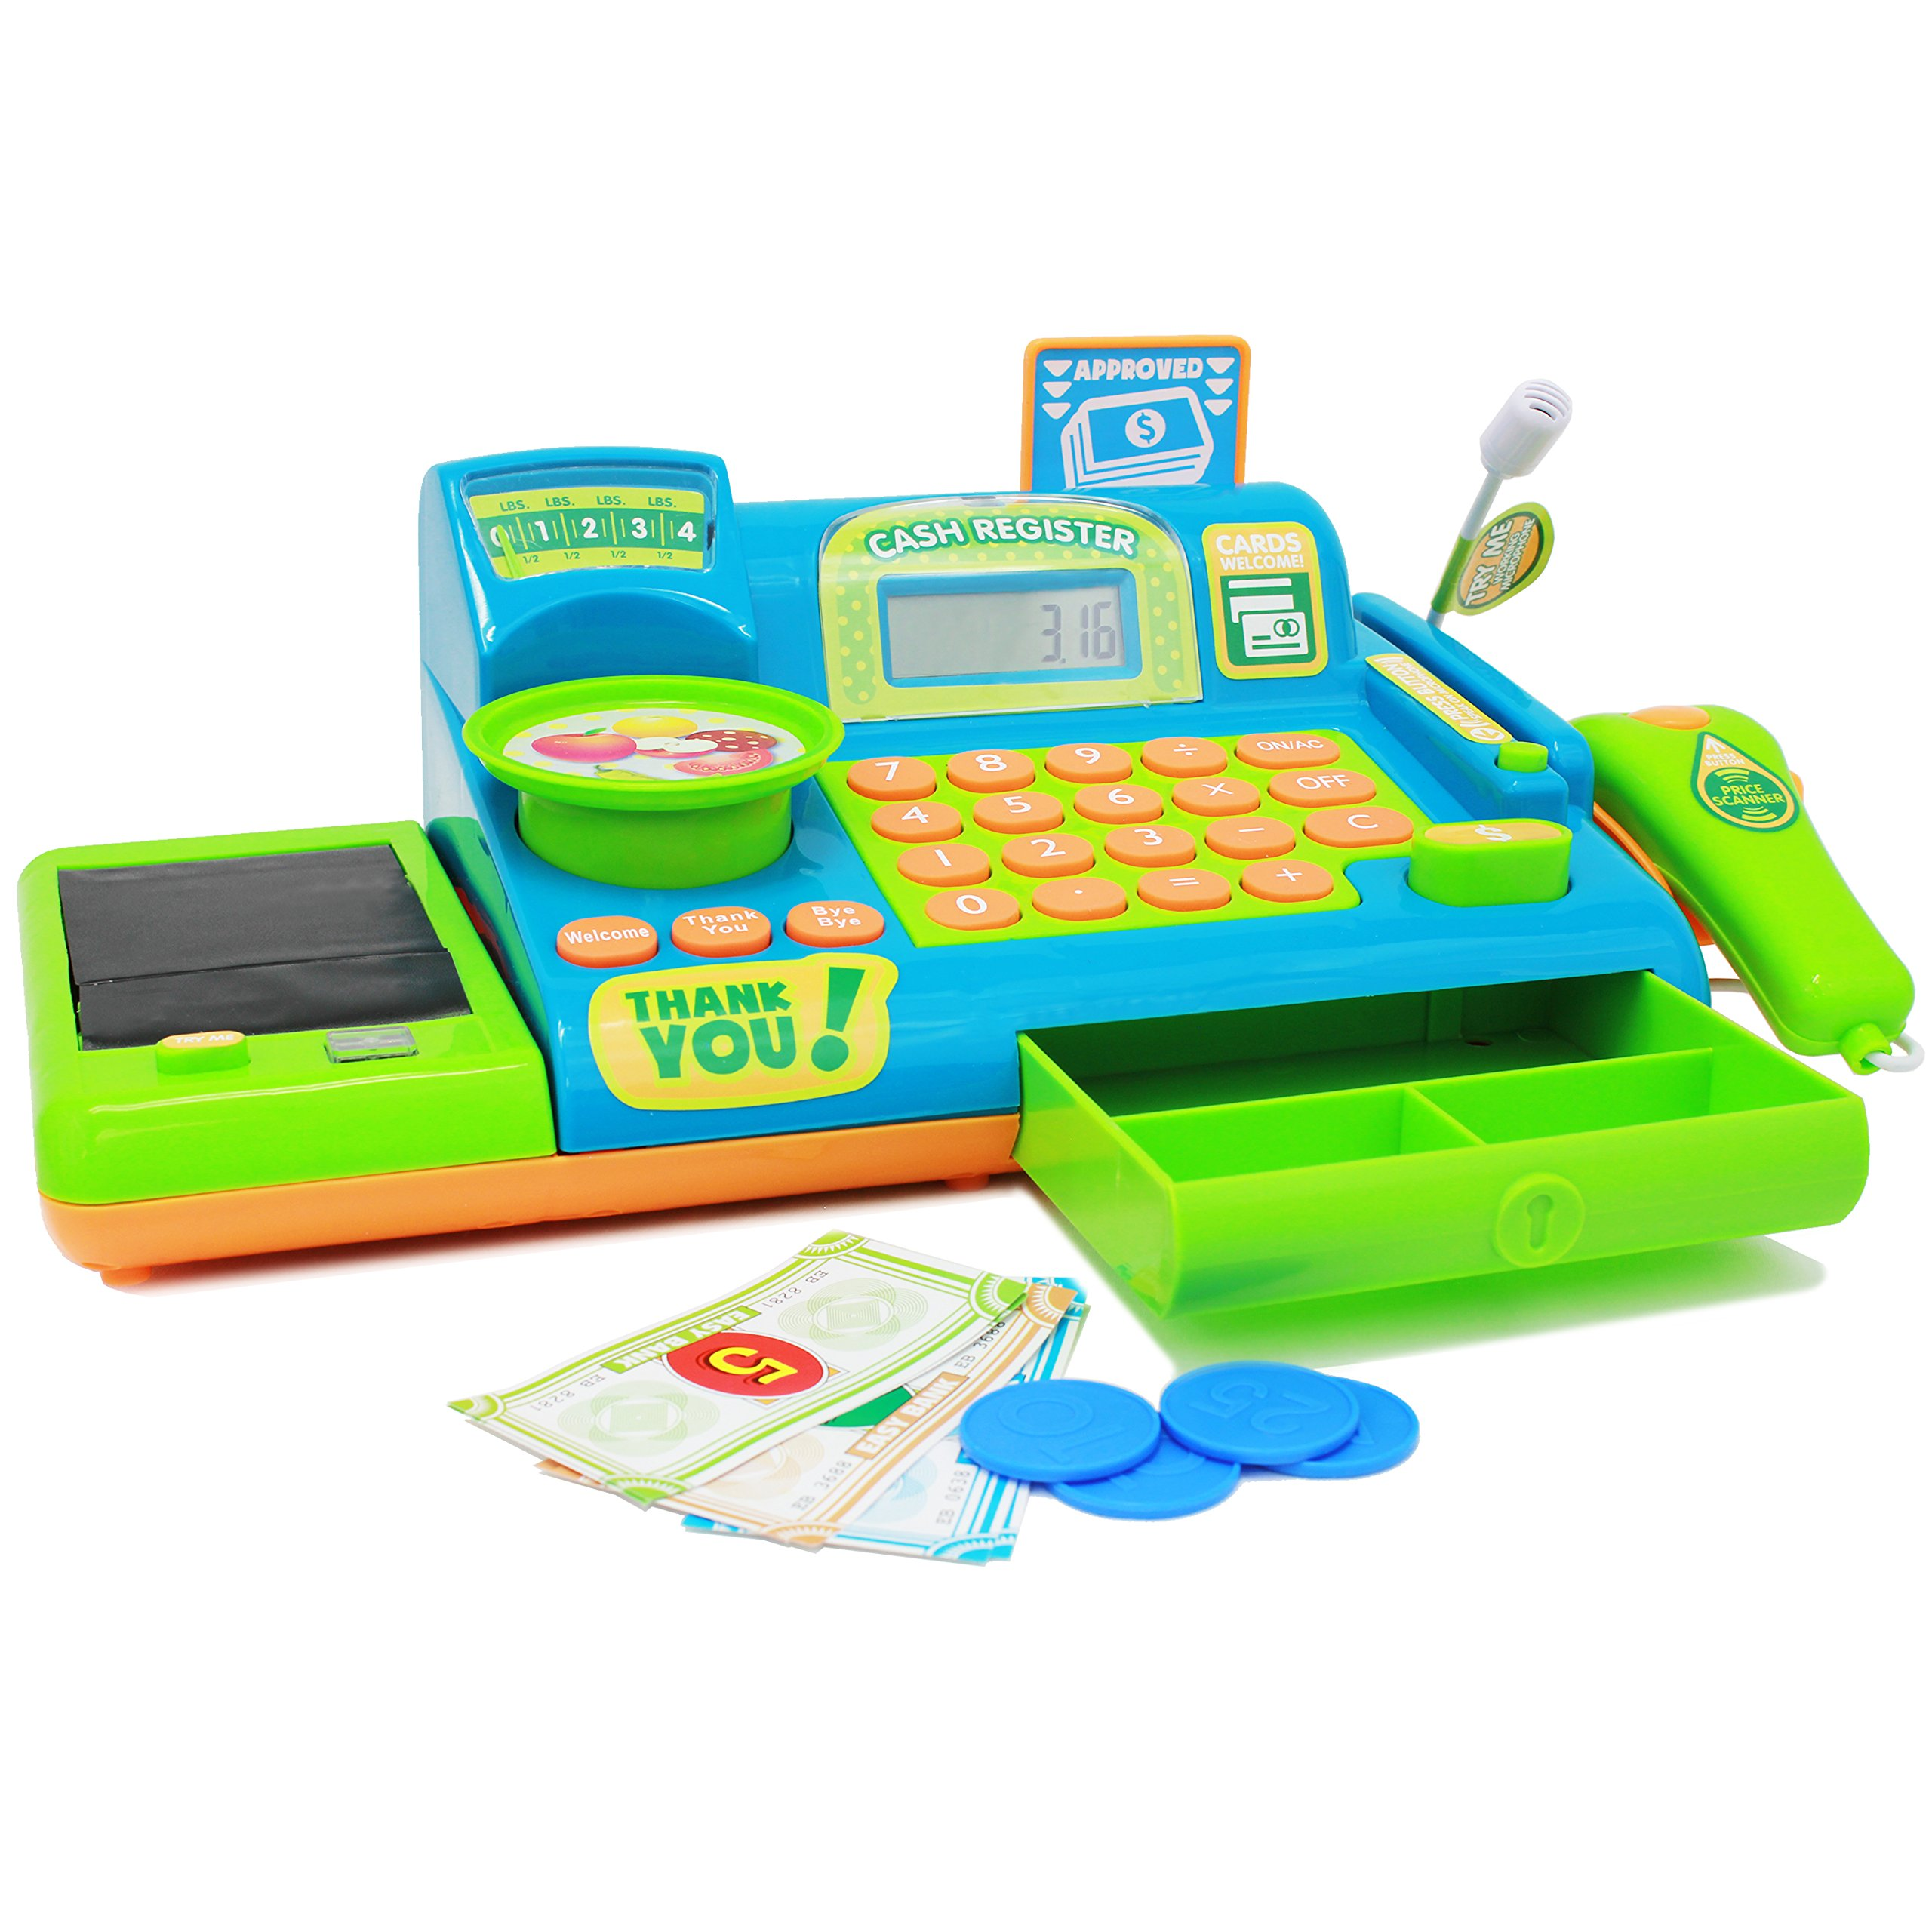 Boley Kids Toy Cash Register - Pretend Play Educational Toy Cash Register With Electronic Sounds, Play Money, Grocery Toy and More! by Boley